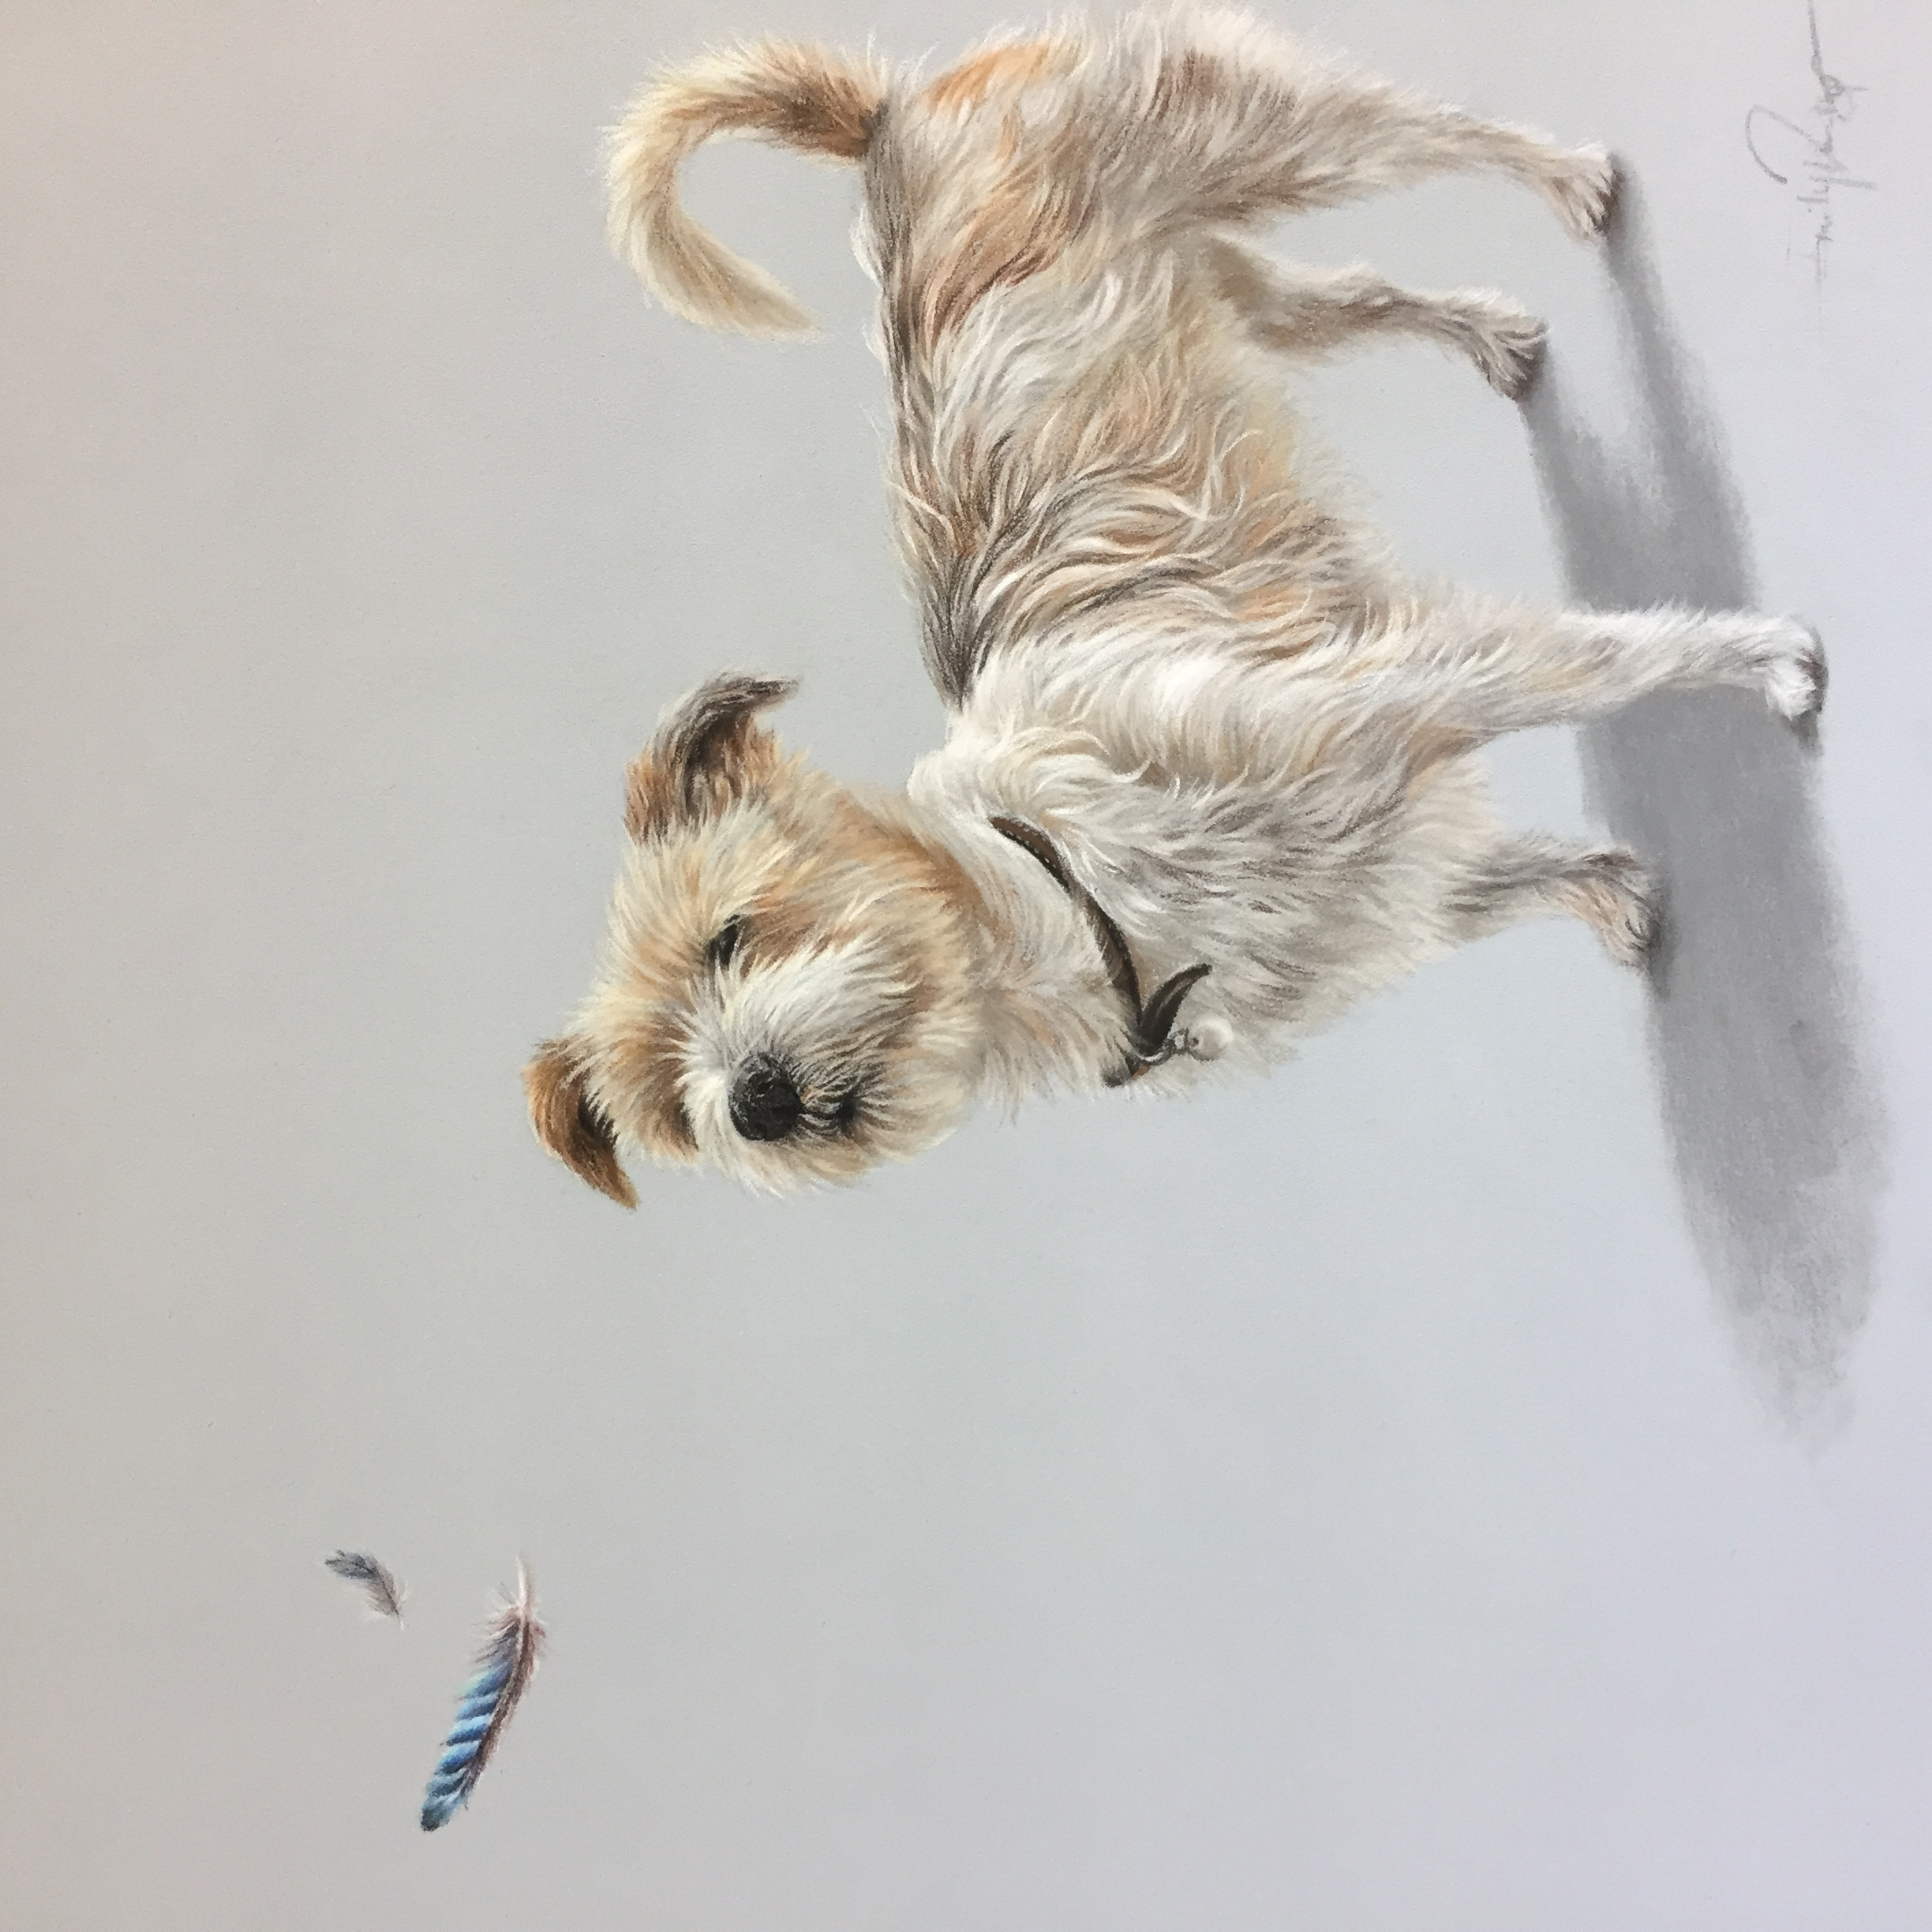 white and brown dog drawing in pastel pencils